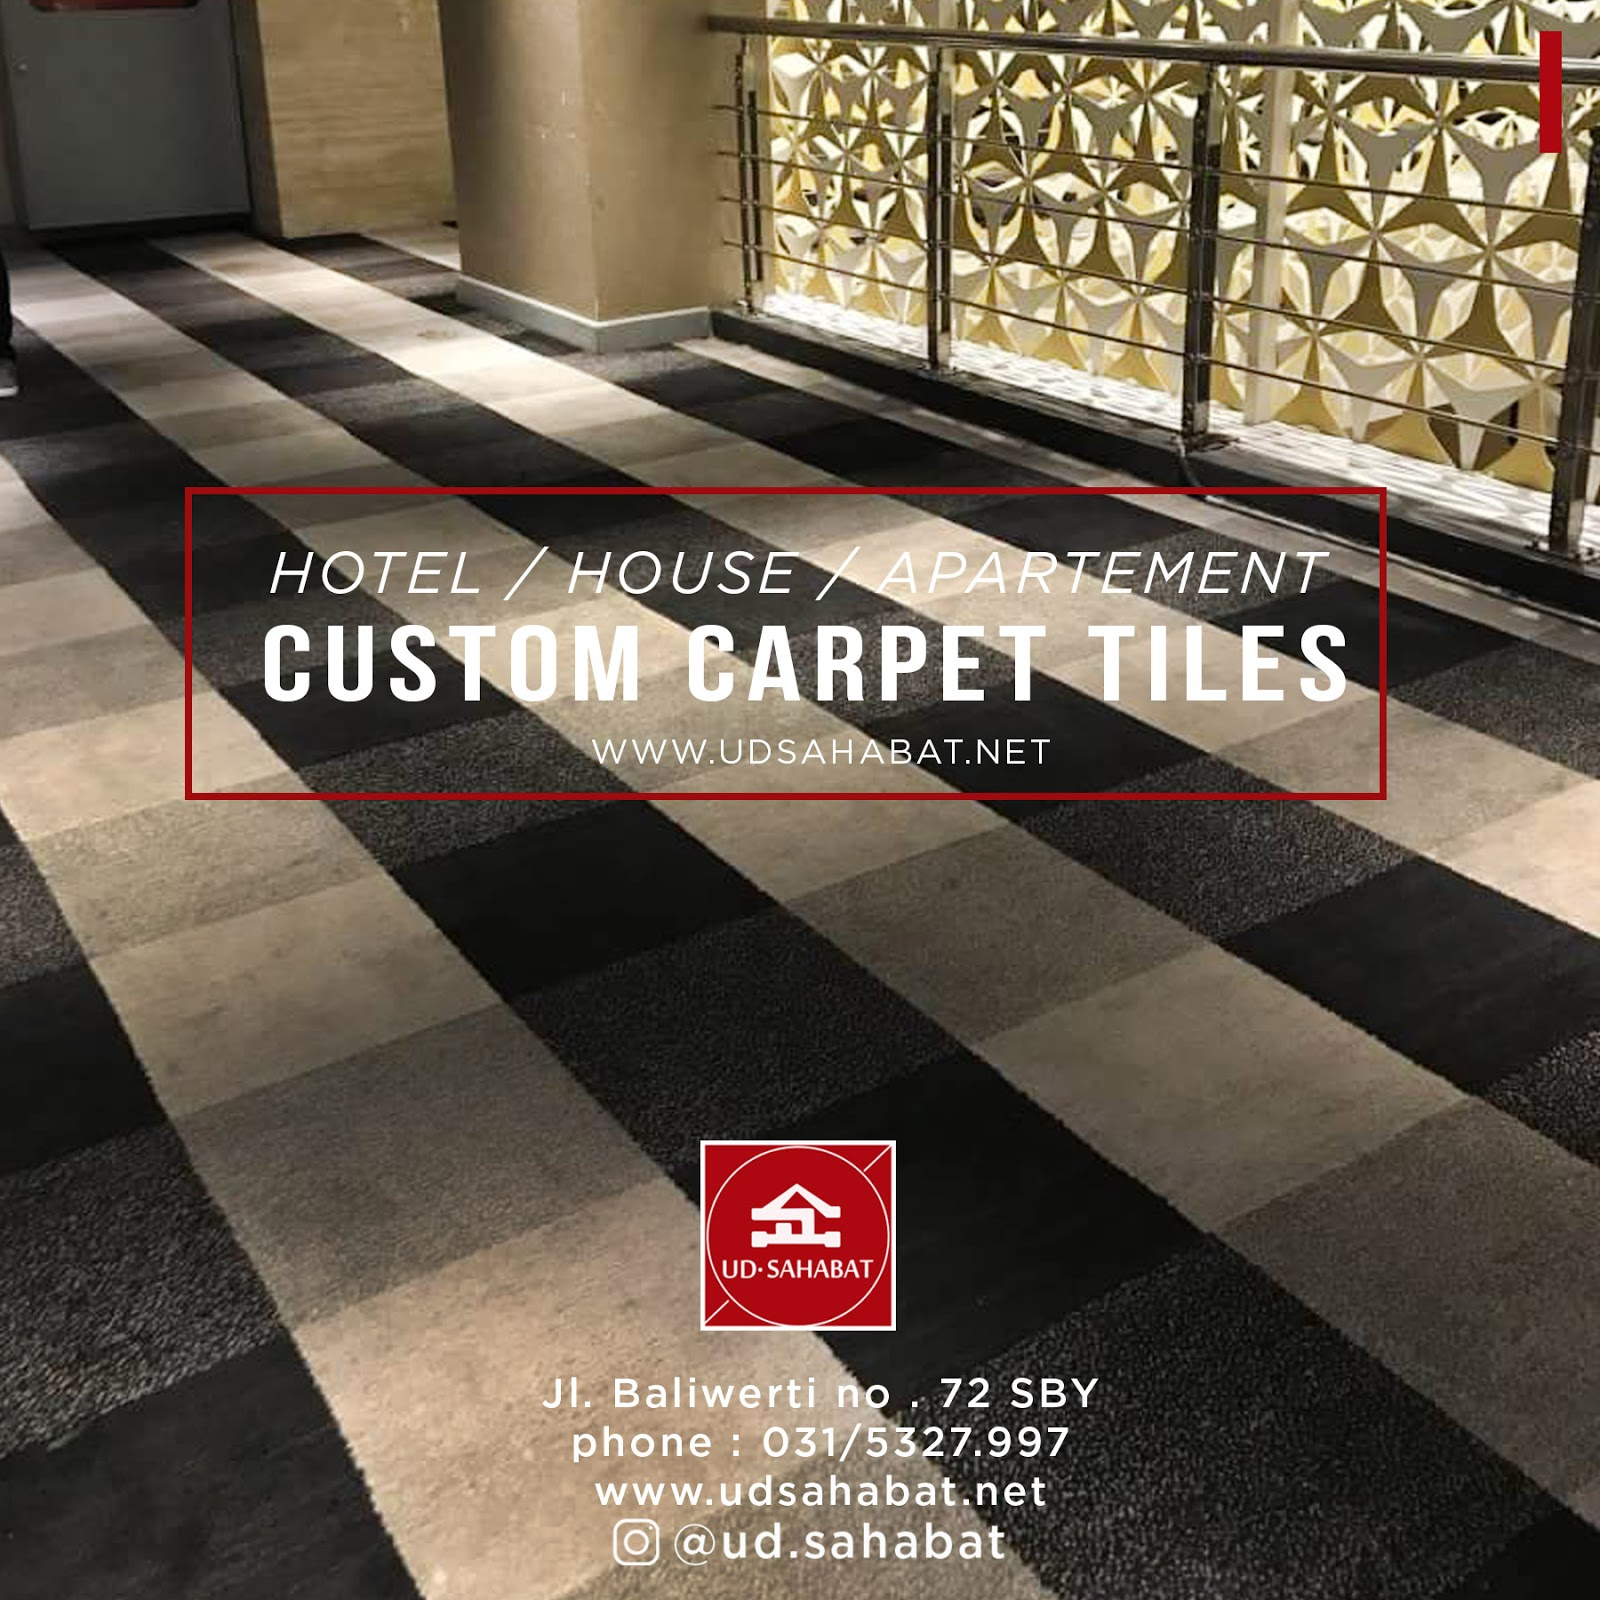 jual custom carpet tiles surabaya udsahabat